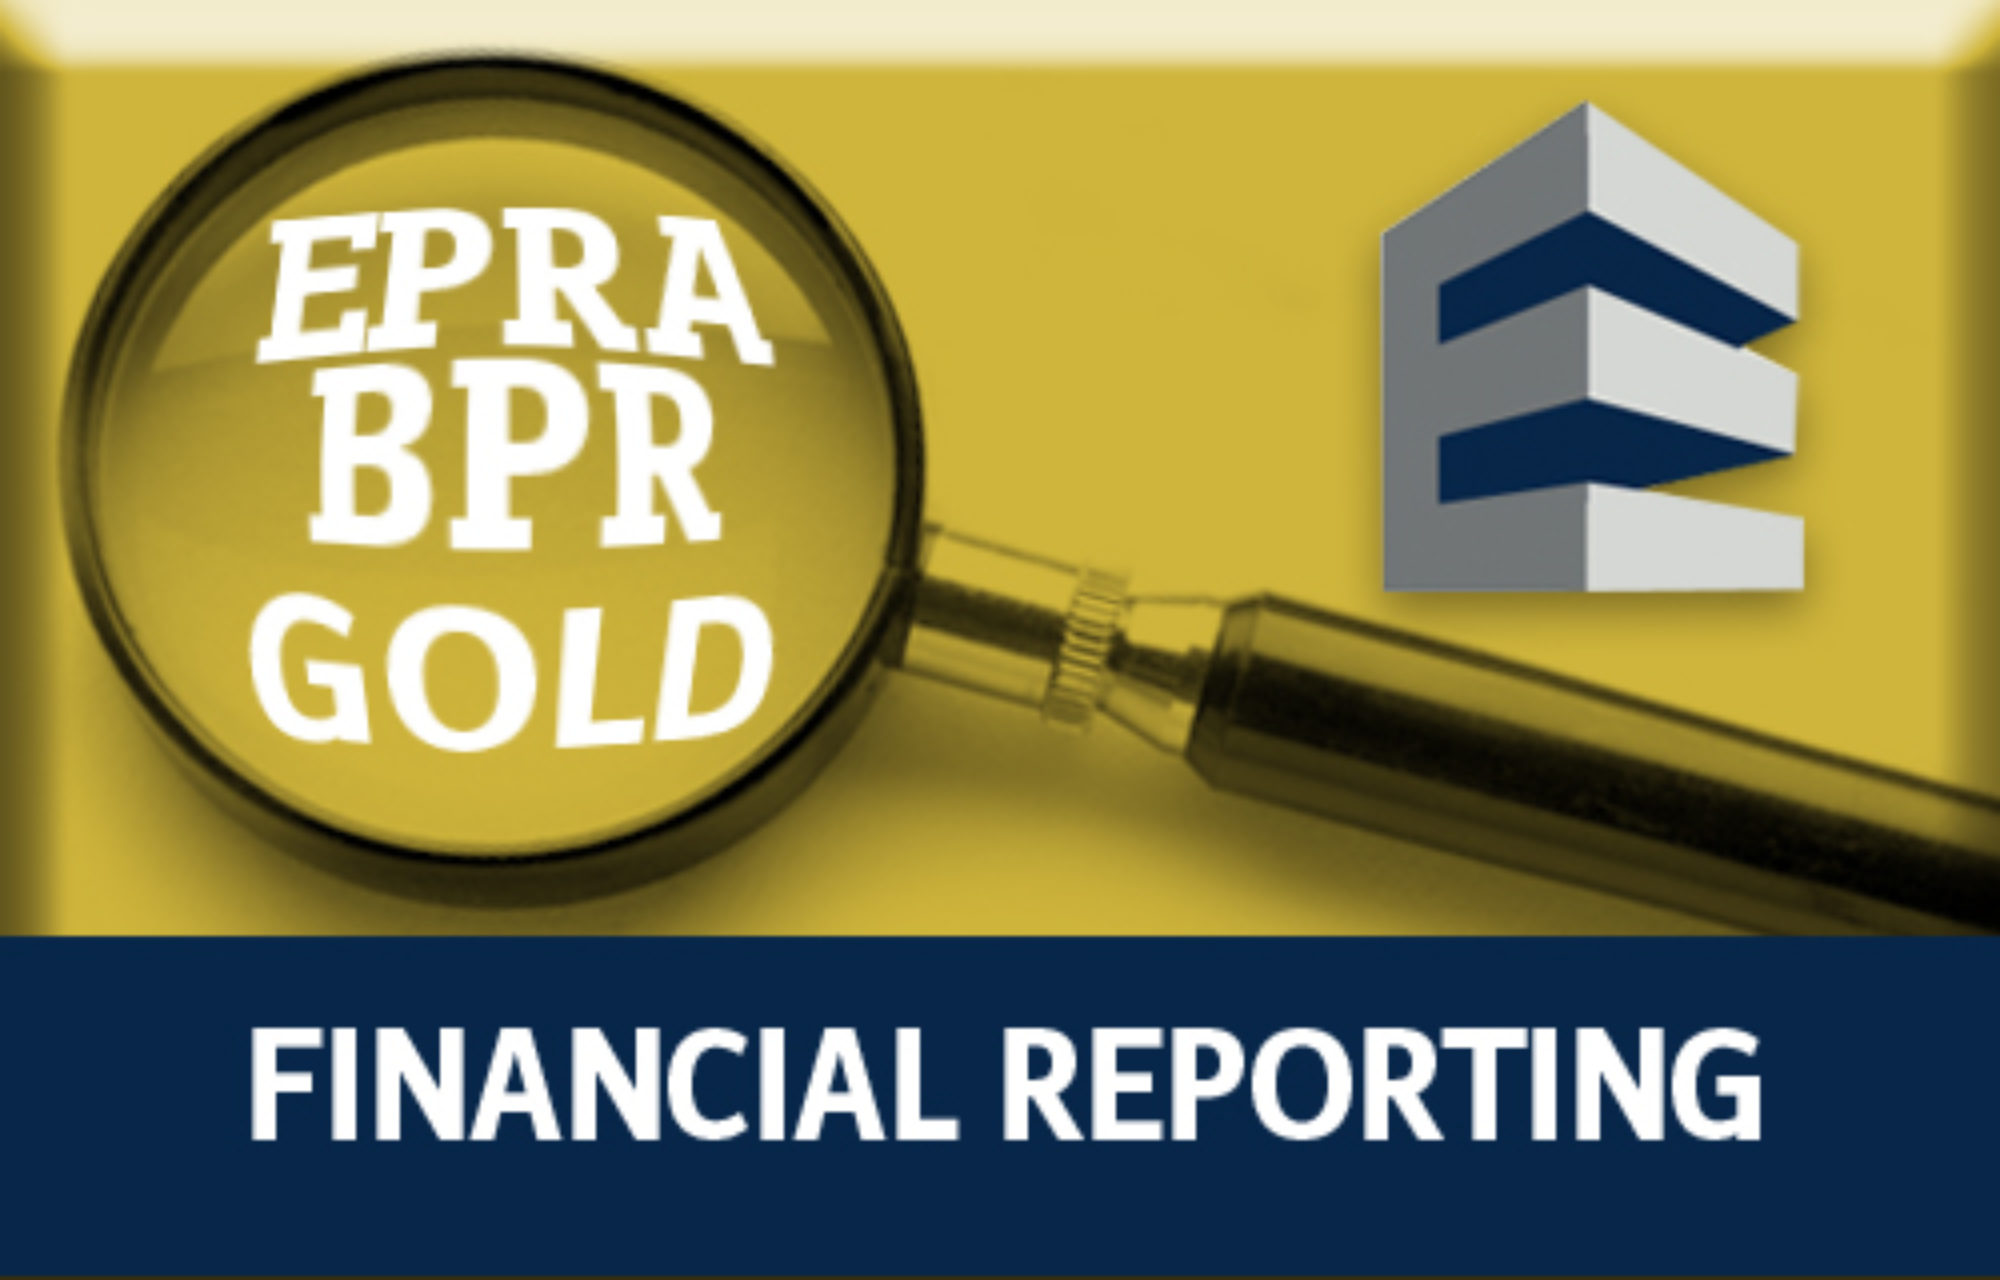 Derwent London wins EPRA Gold for its 2013 annual and sustainability reporting